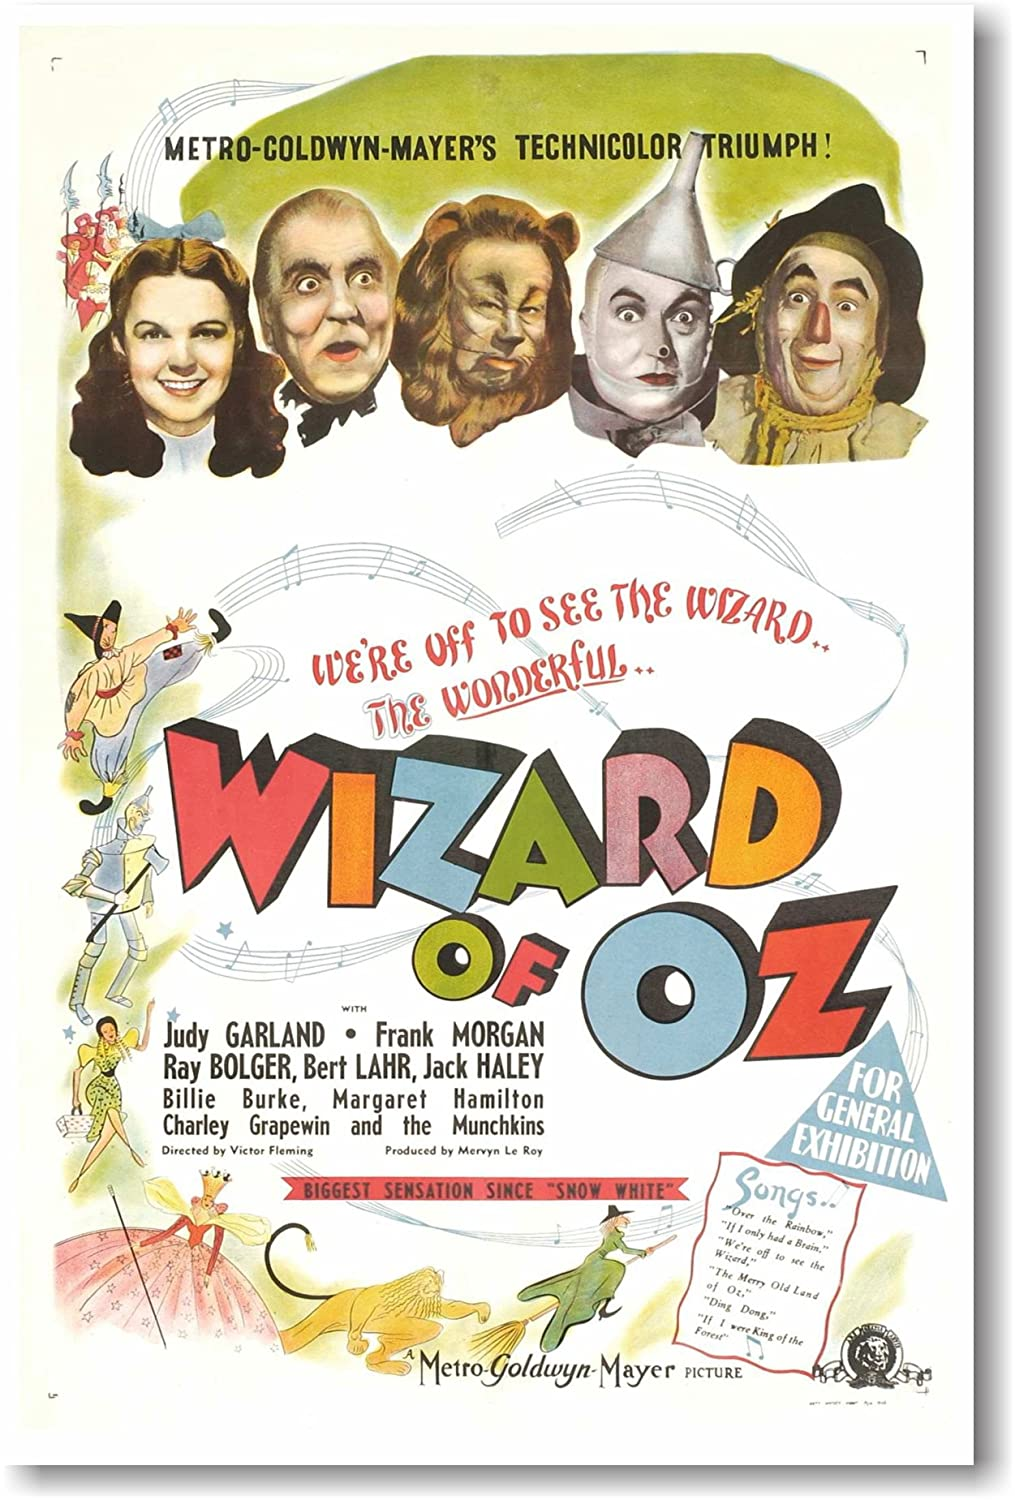 Wizard of Oz 2 - NEW Vintage Movie Poster